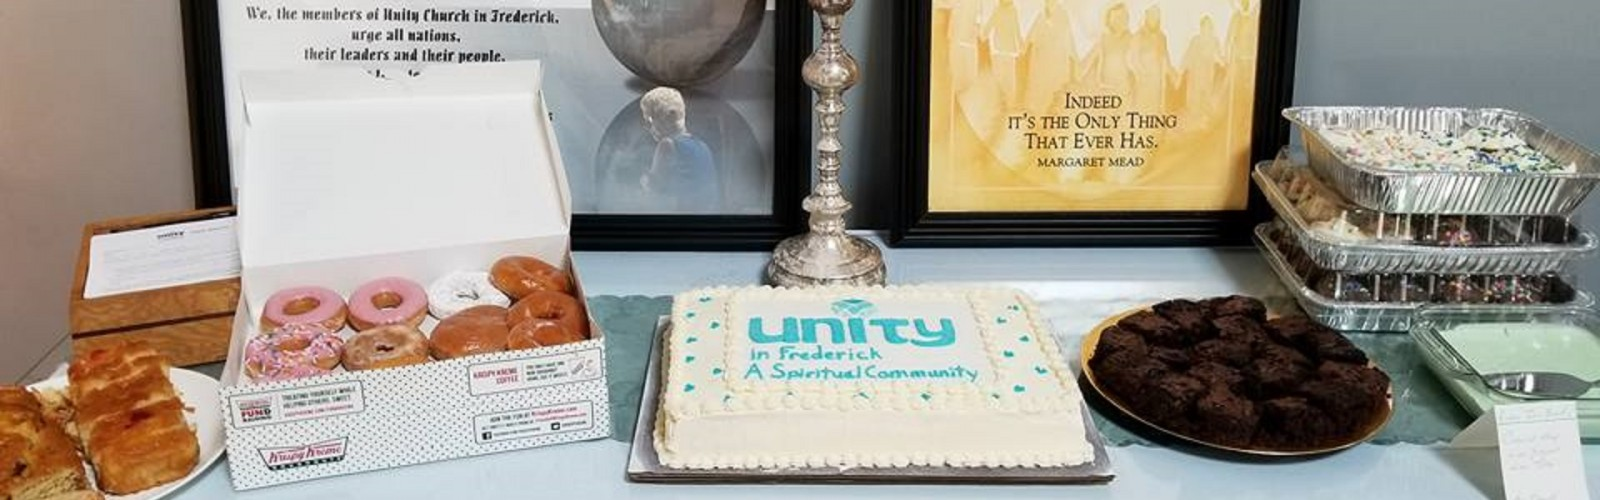 Dedication cake and desserts - Unity in Frederick